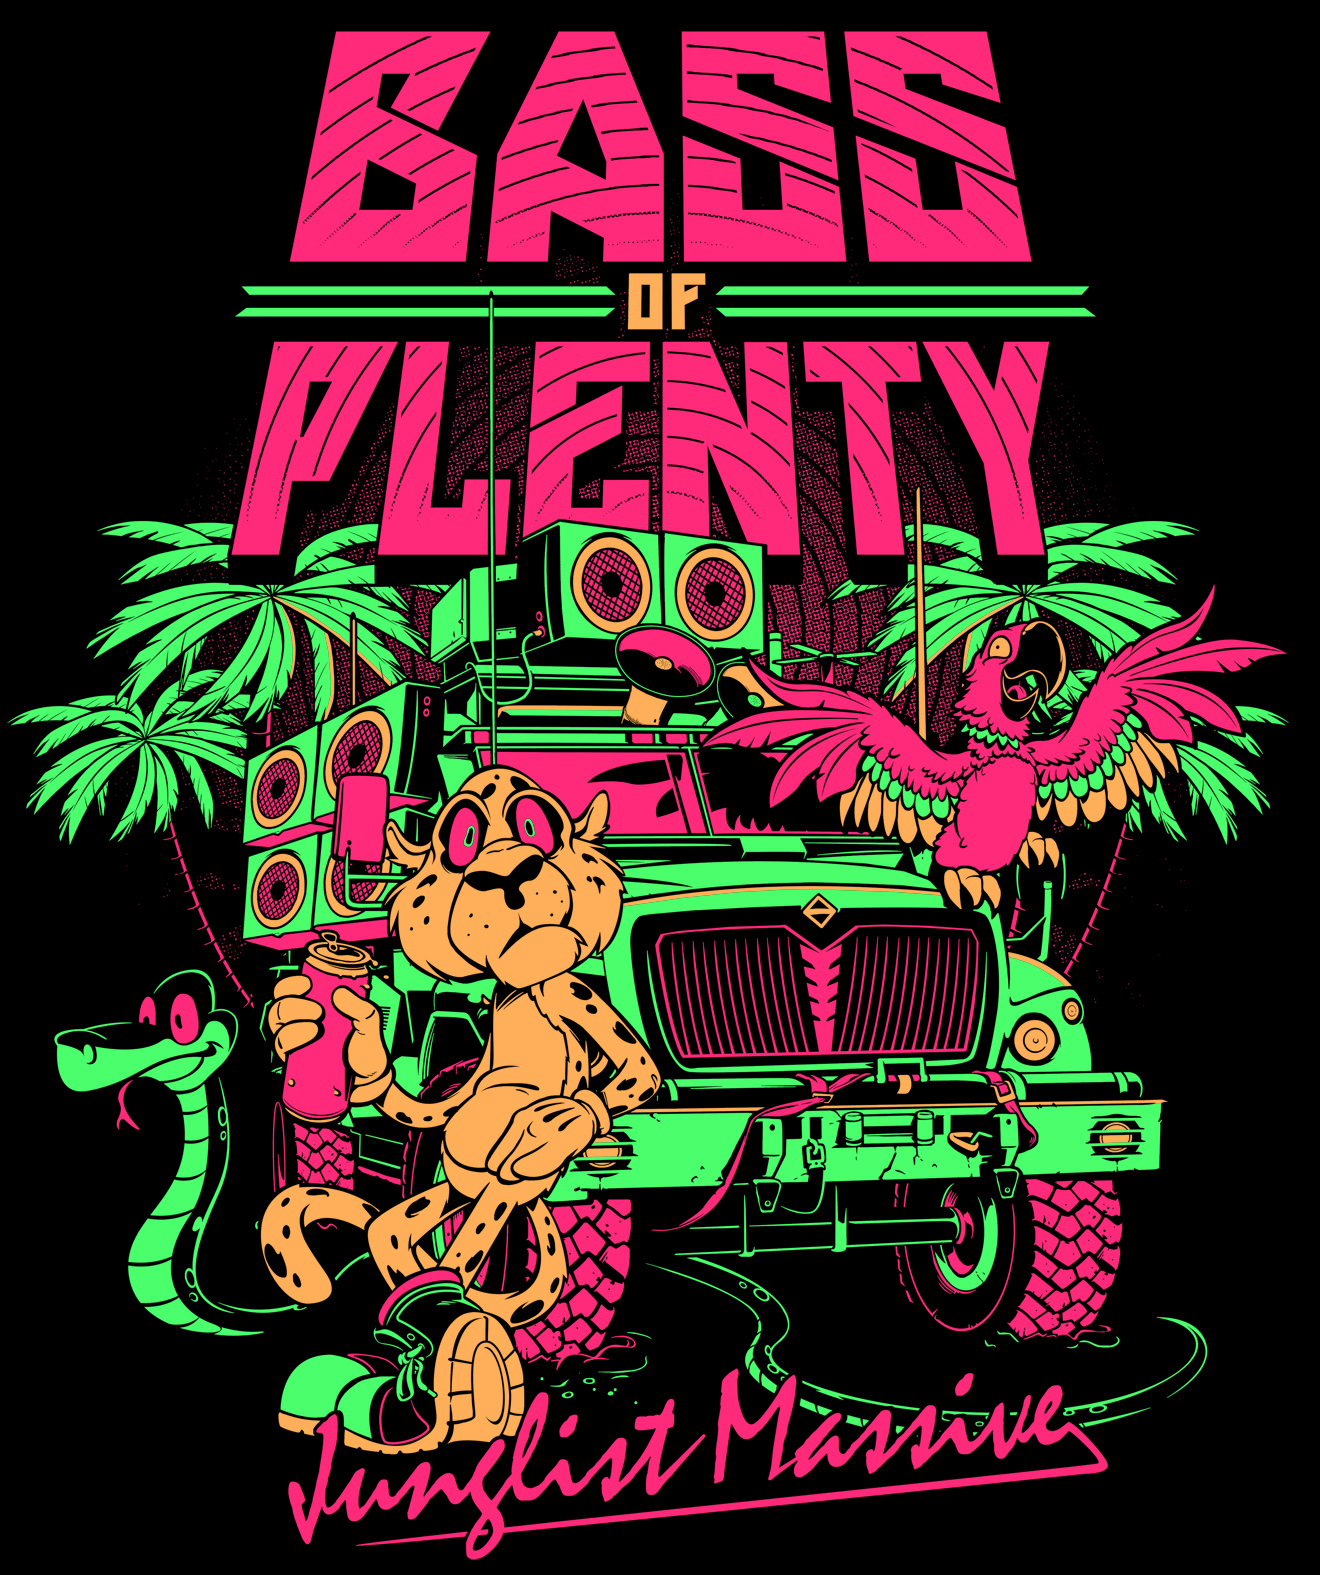 bass of plenty jungle print ready.jpg